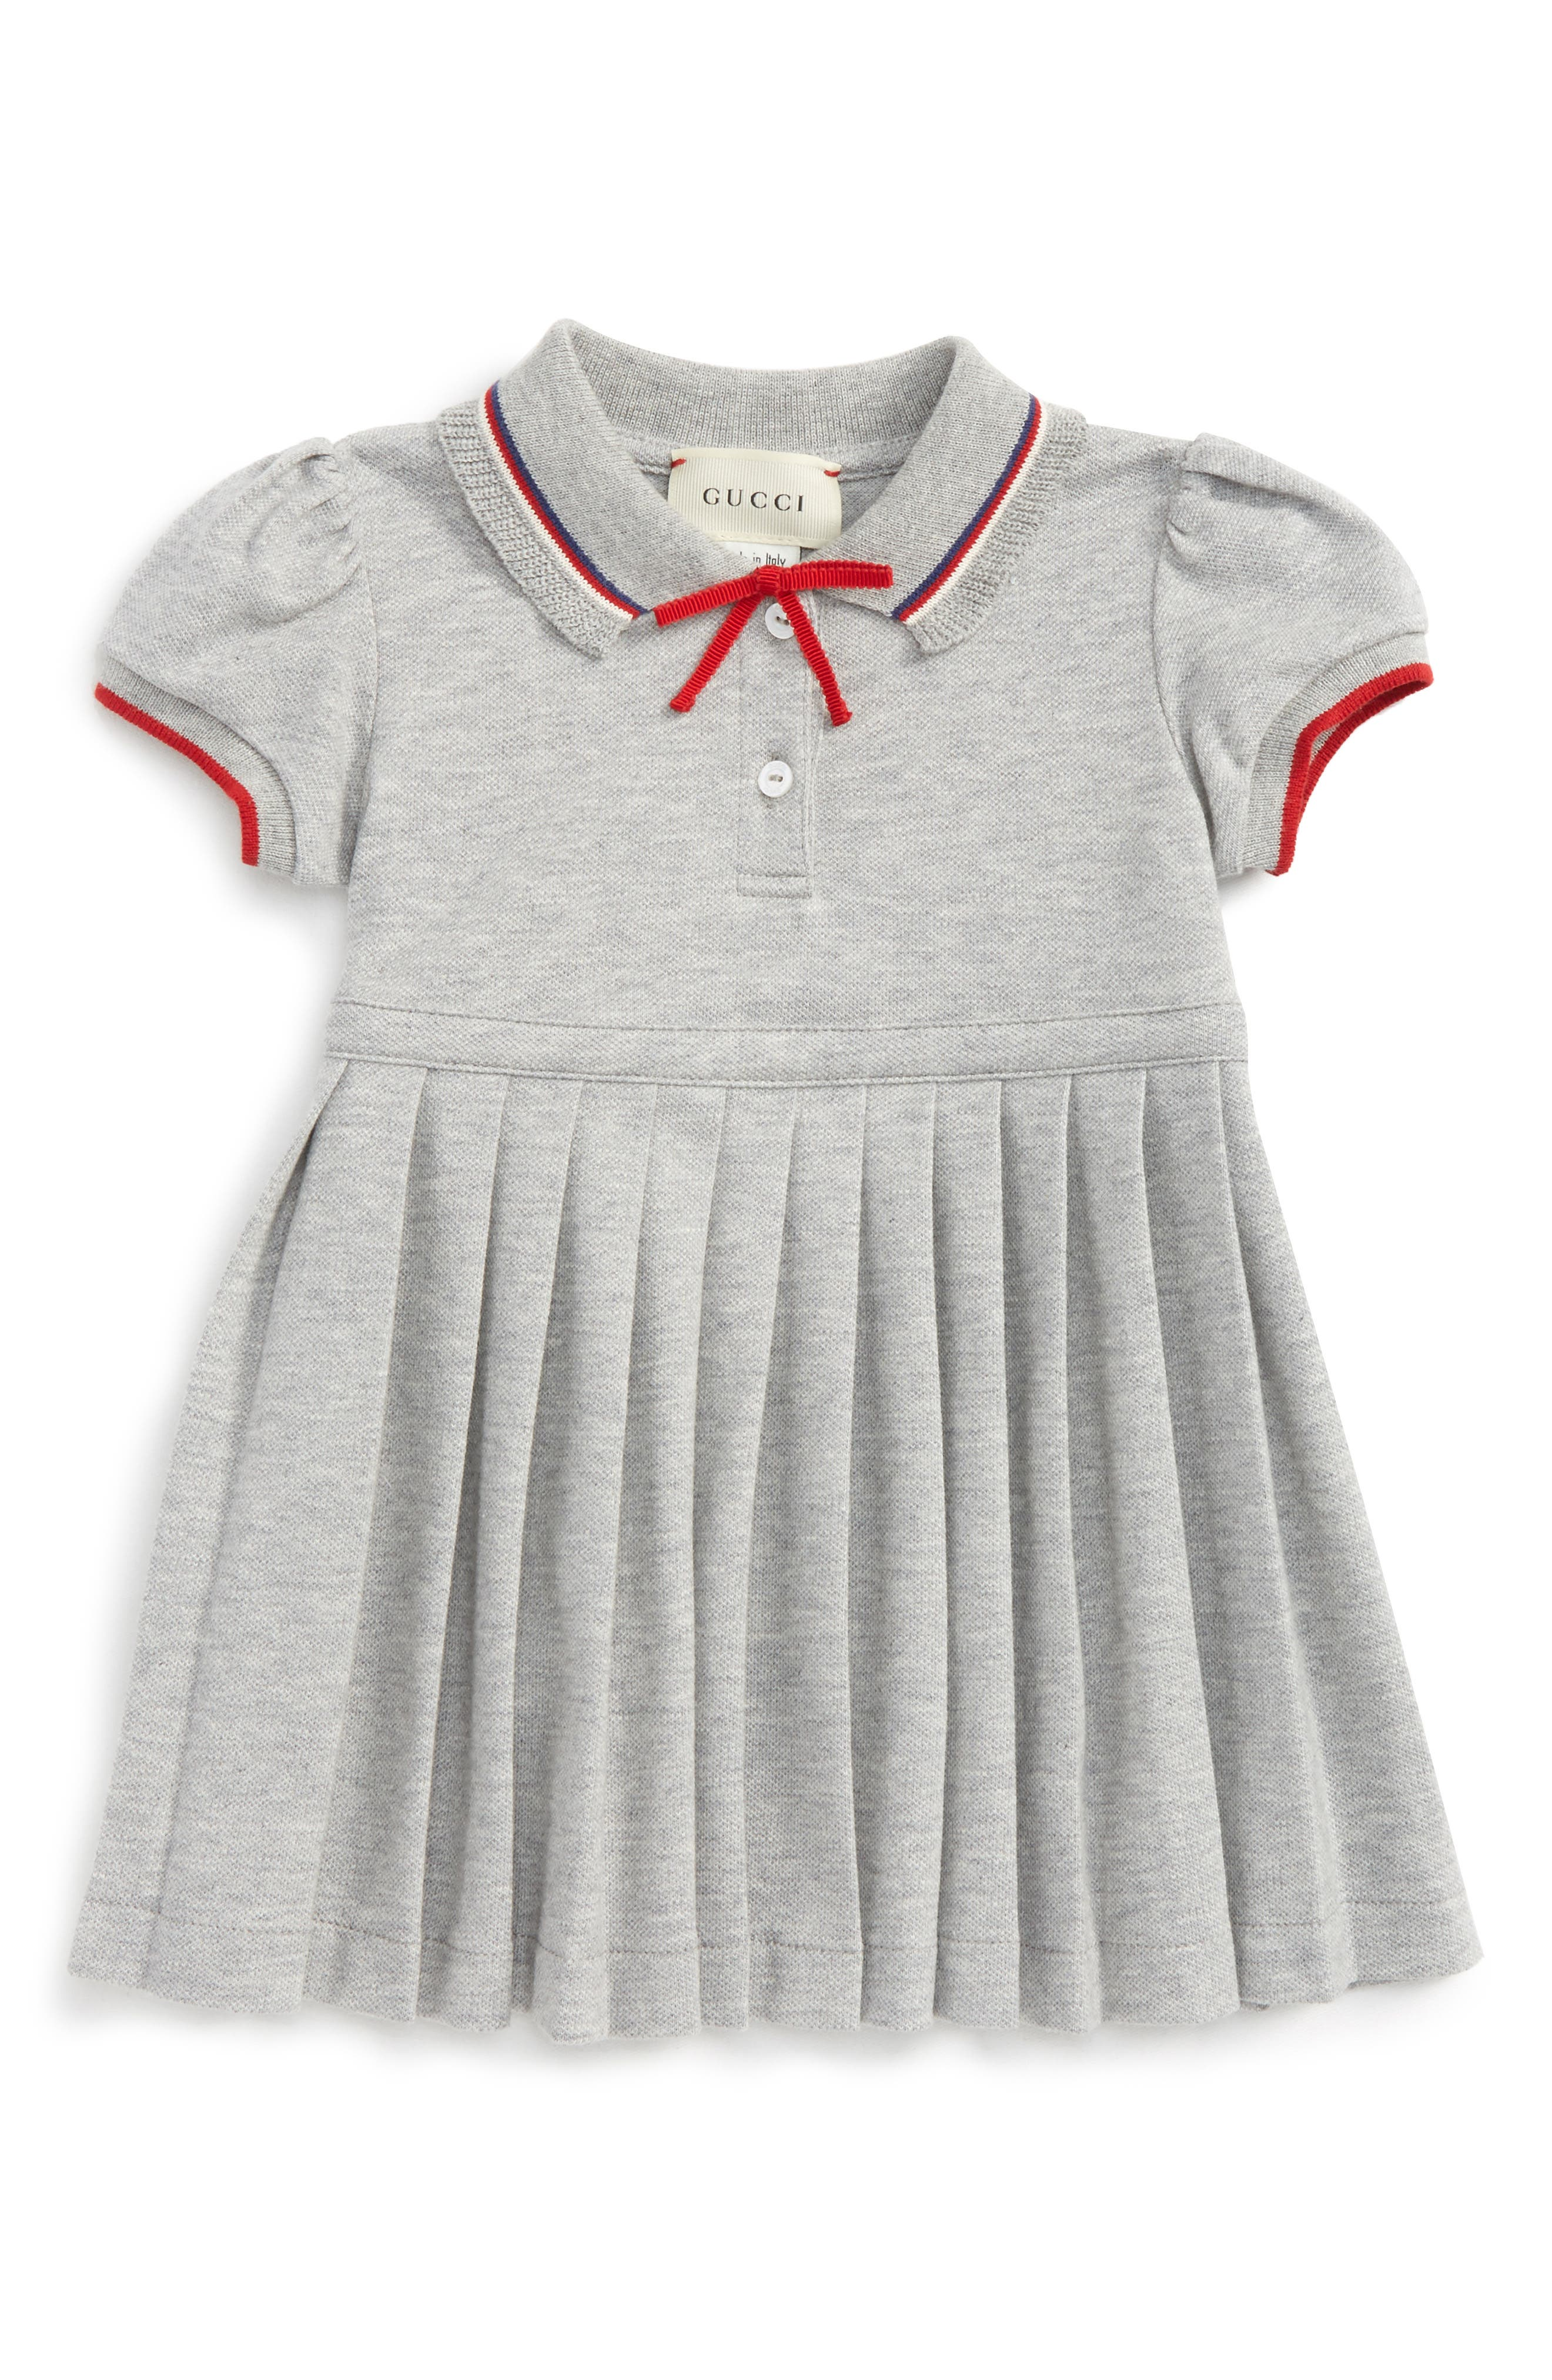 Gucci Bow Trimmed Dress (Baby Girls)